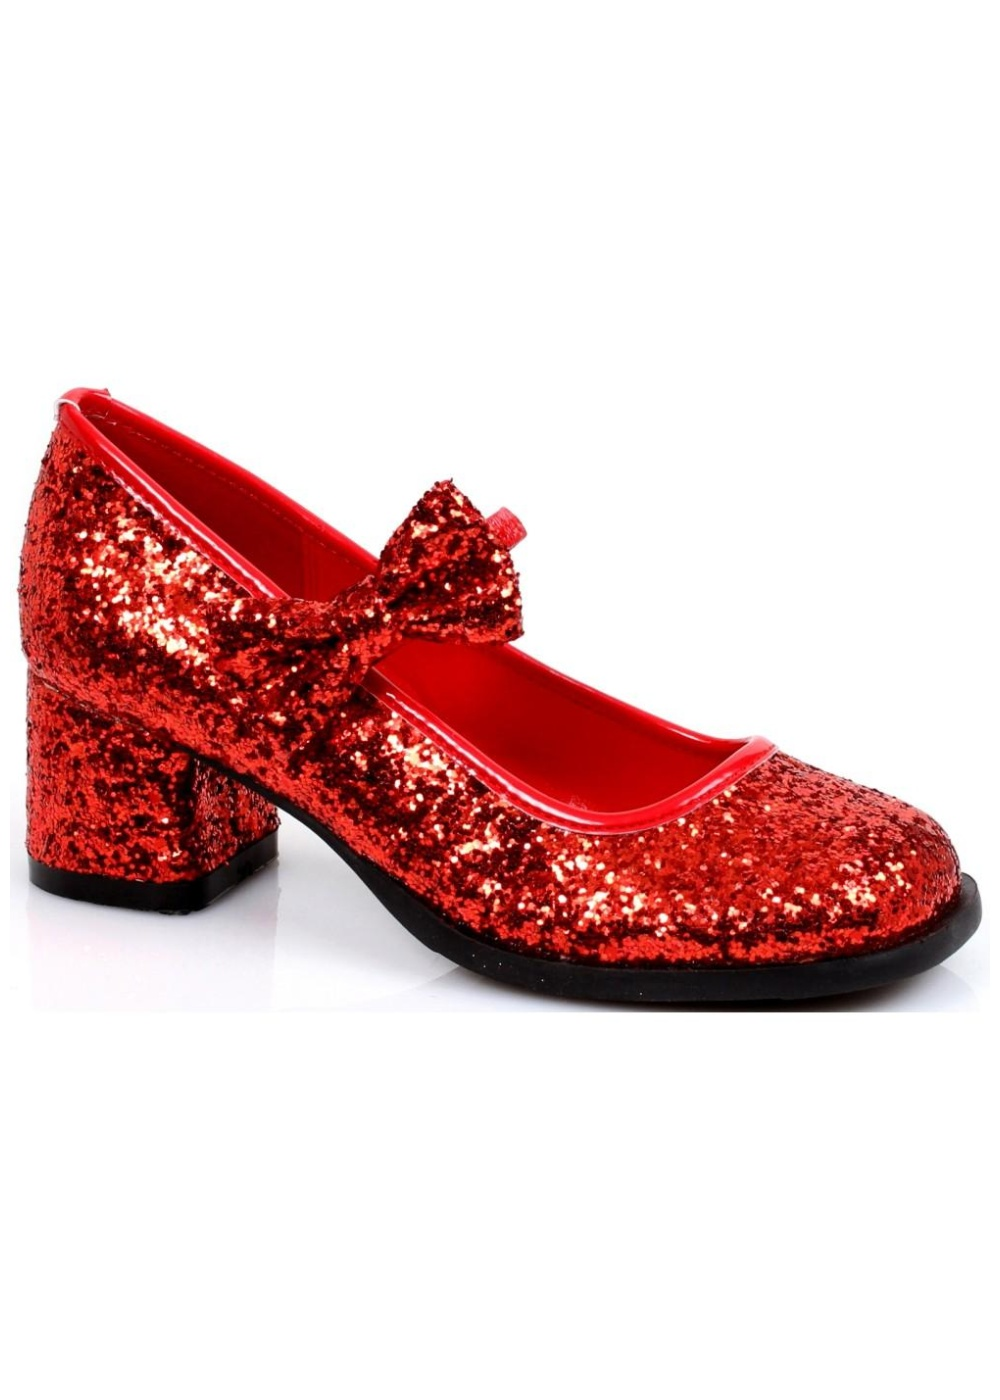 She'll be off to see the wizard or into the woods to grandmother's house in a pair of Child Red Sequin Shoes. It's the classic way to accessorize her costume and a glamours way to take on her latest adventure! fascinatingnewsvv.ml fascinatingnewsvv.ml Kansas Girl Costumes. Child Red Sequin Shoes.